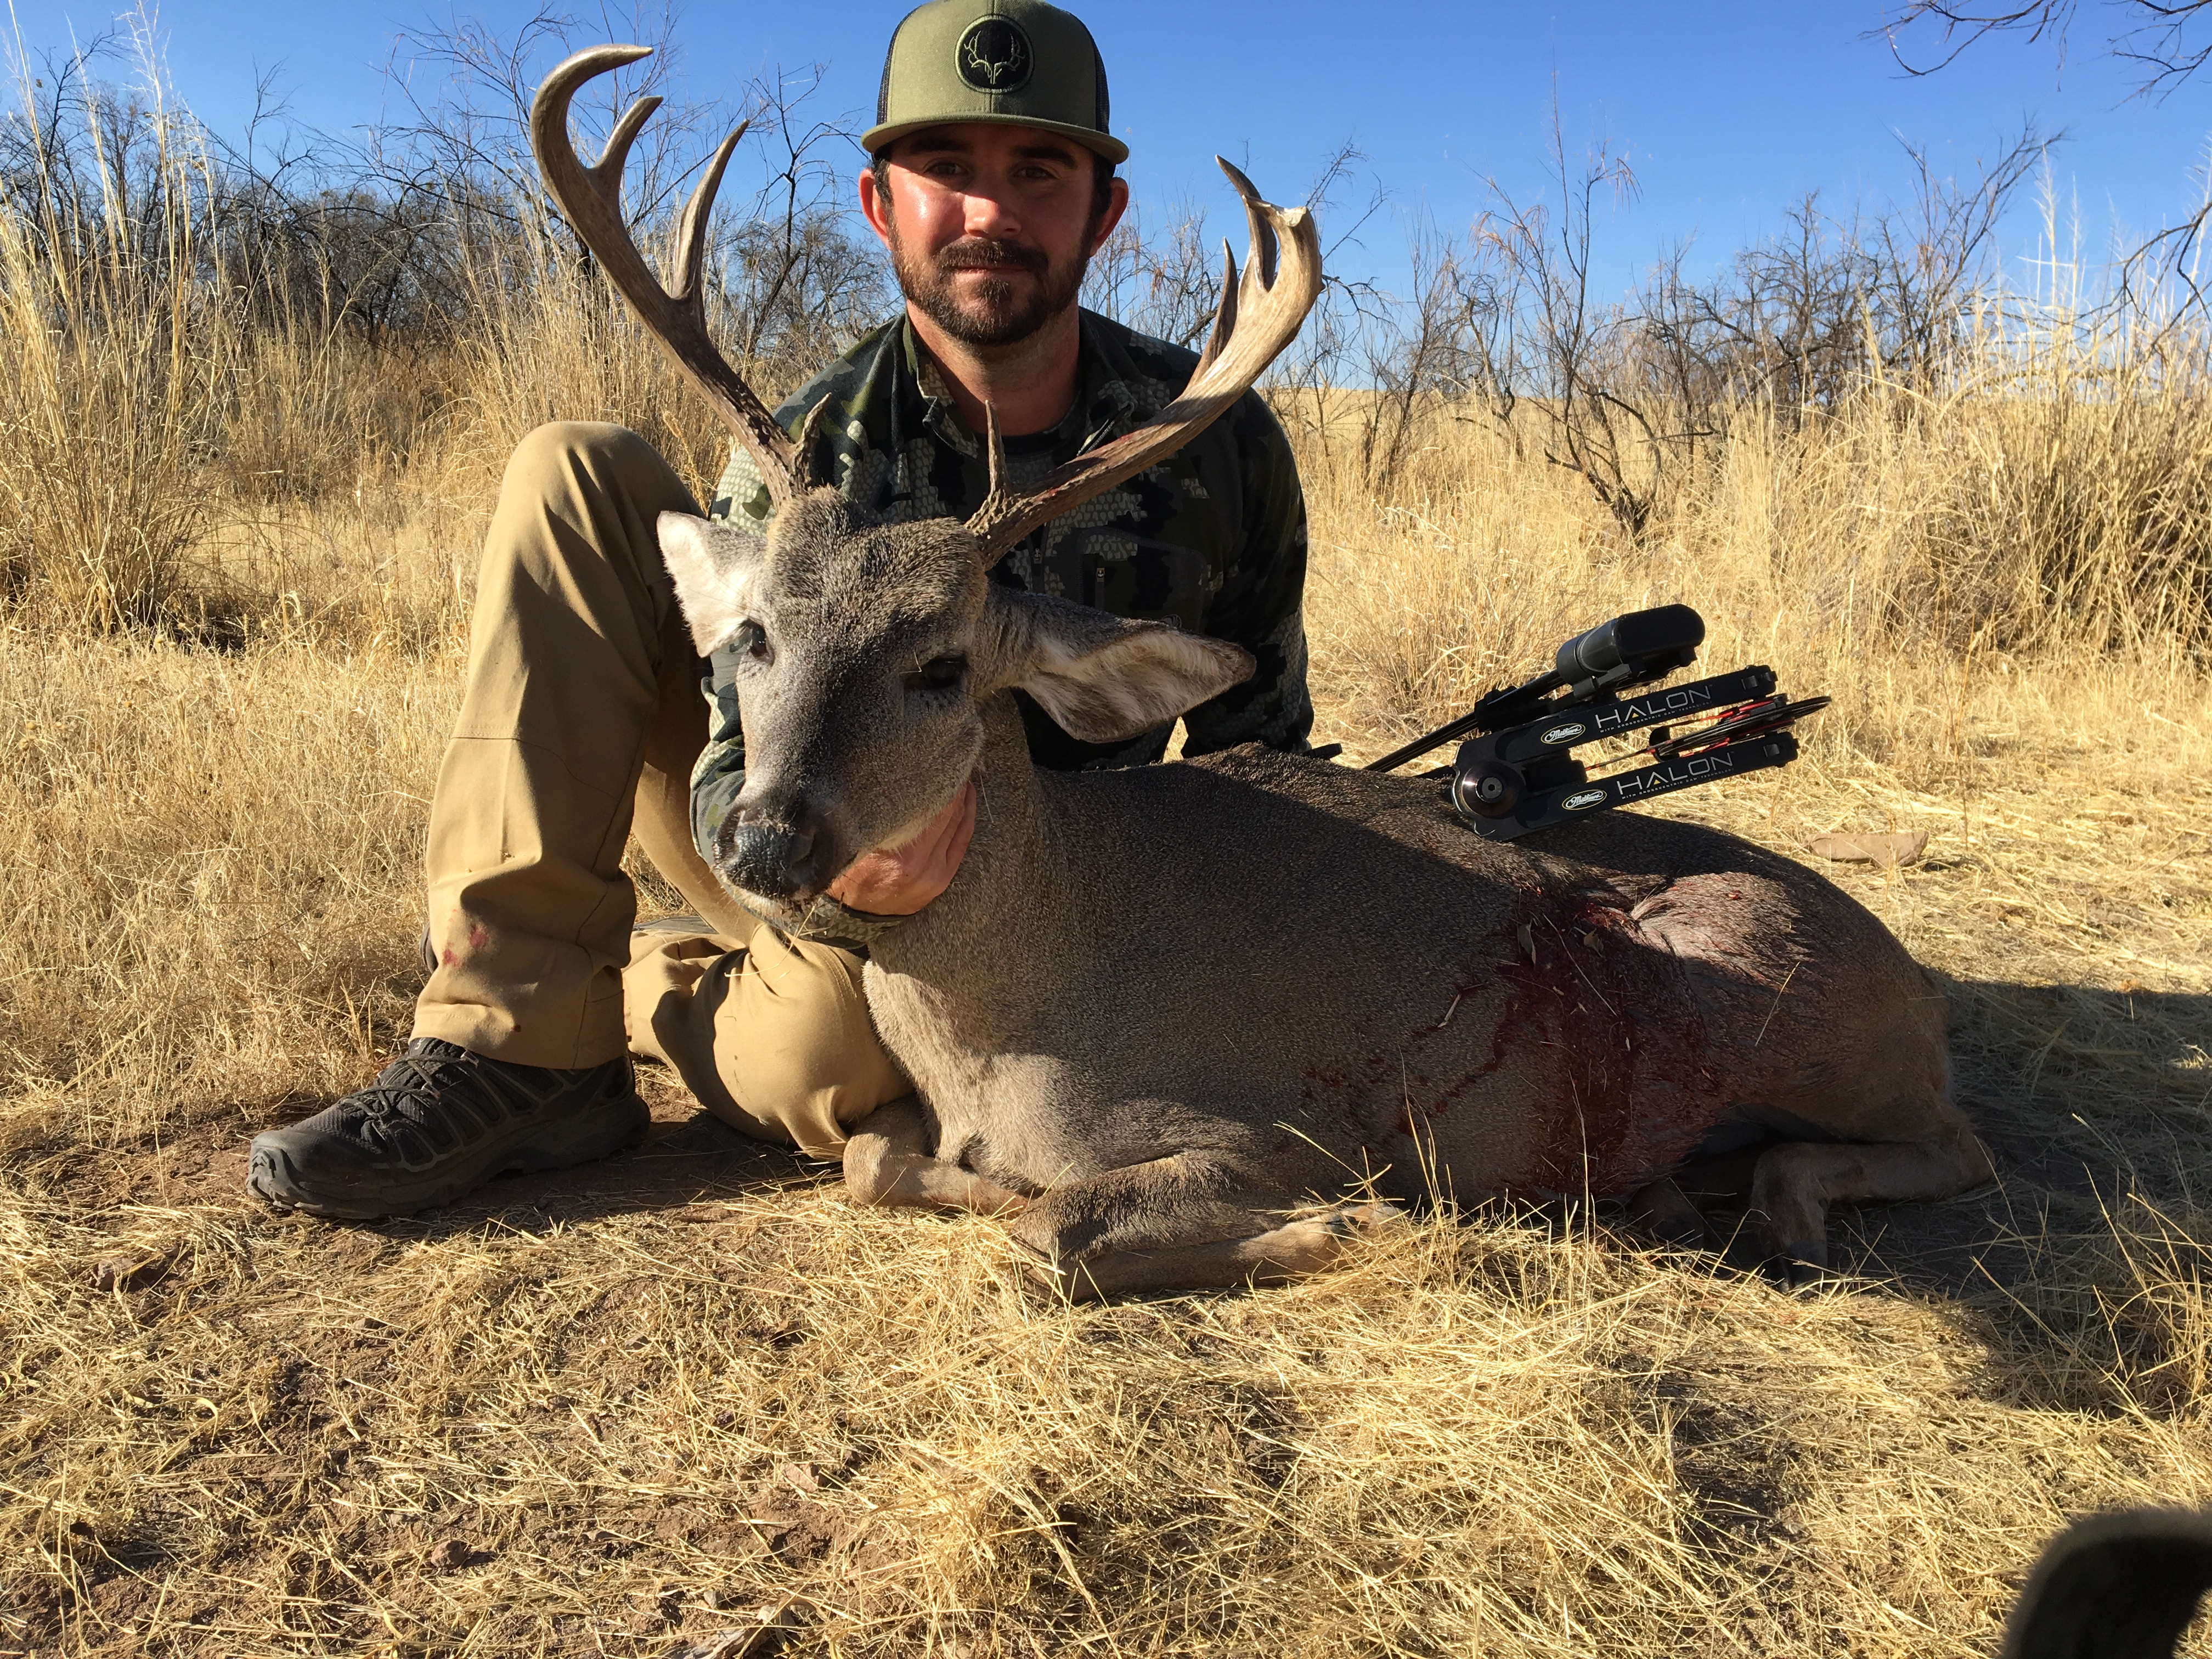 arizona-otc-coues-deer-15512906241653451504